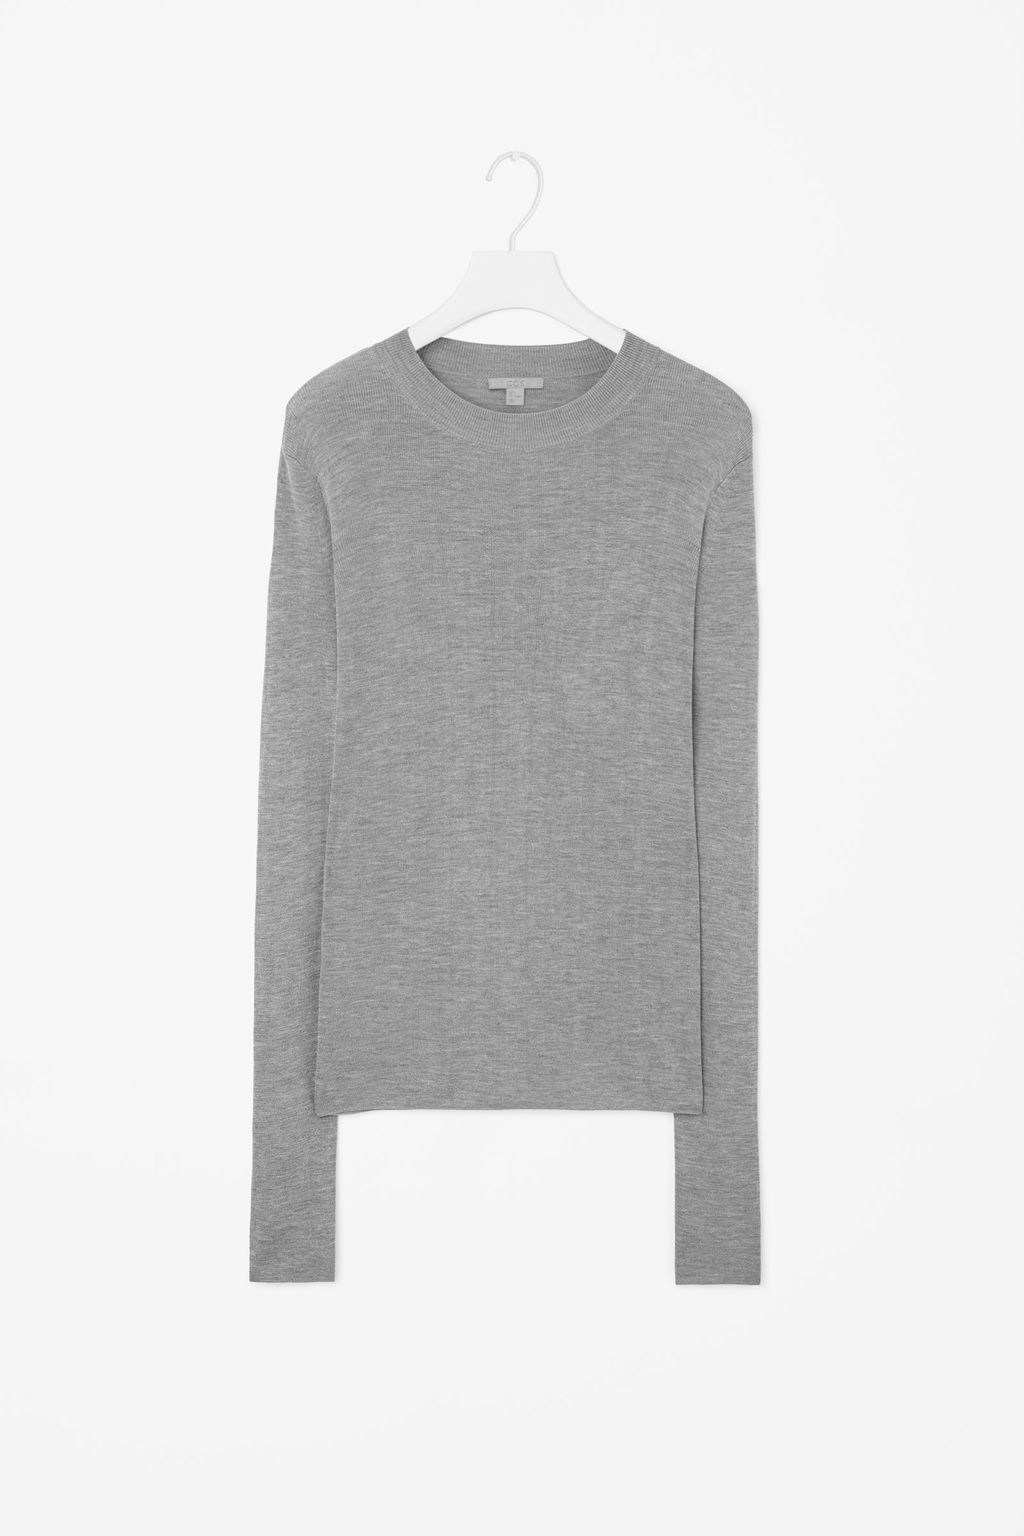 Silk Jumper - pattern: plain; length: below the bottom; style: standard; predominant colour: mid grey; occasions: casual, creative work; fibres: silk - 100%; fit: standard fit; neckline: crew; sleeve length: long sleeve; sleeve style: standard; texture group: knits/crochet; pattern type: knitted - fine stitch; season: a/w 2015; wardrobe: basic